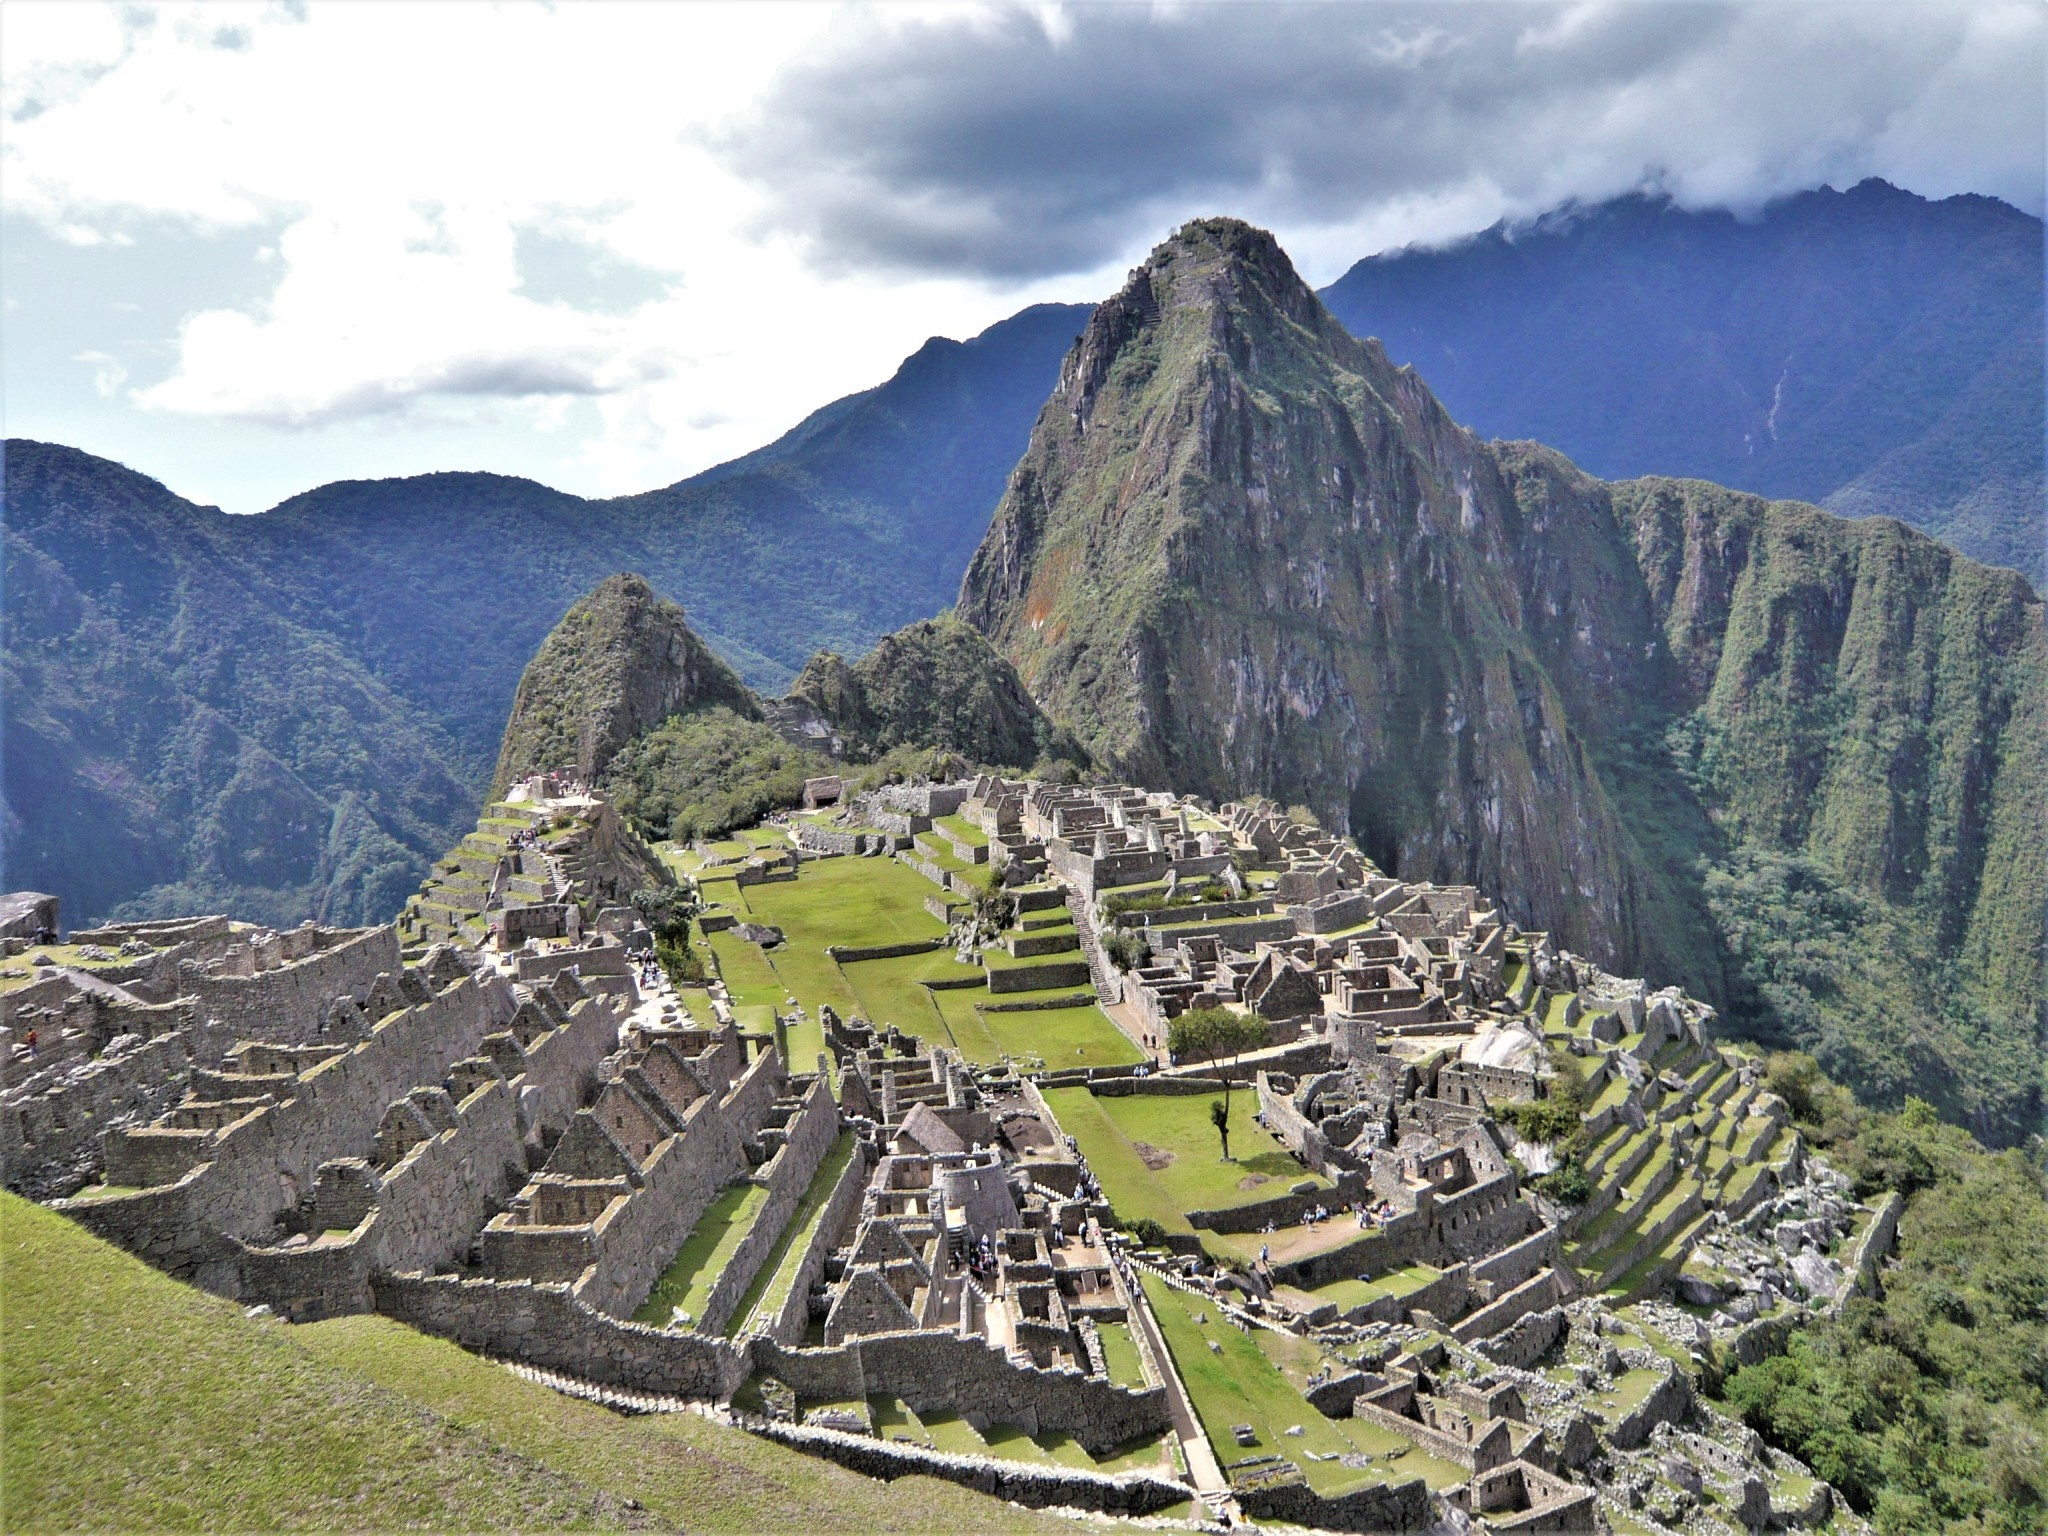 The ruins of the Incan archaeological site of Machu Picchu and surrounding mountains.